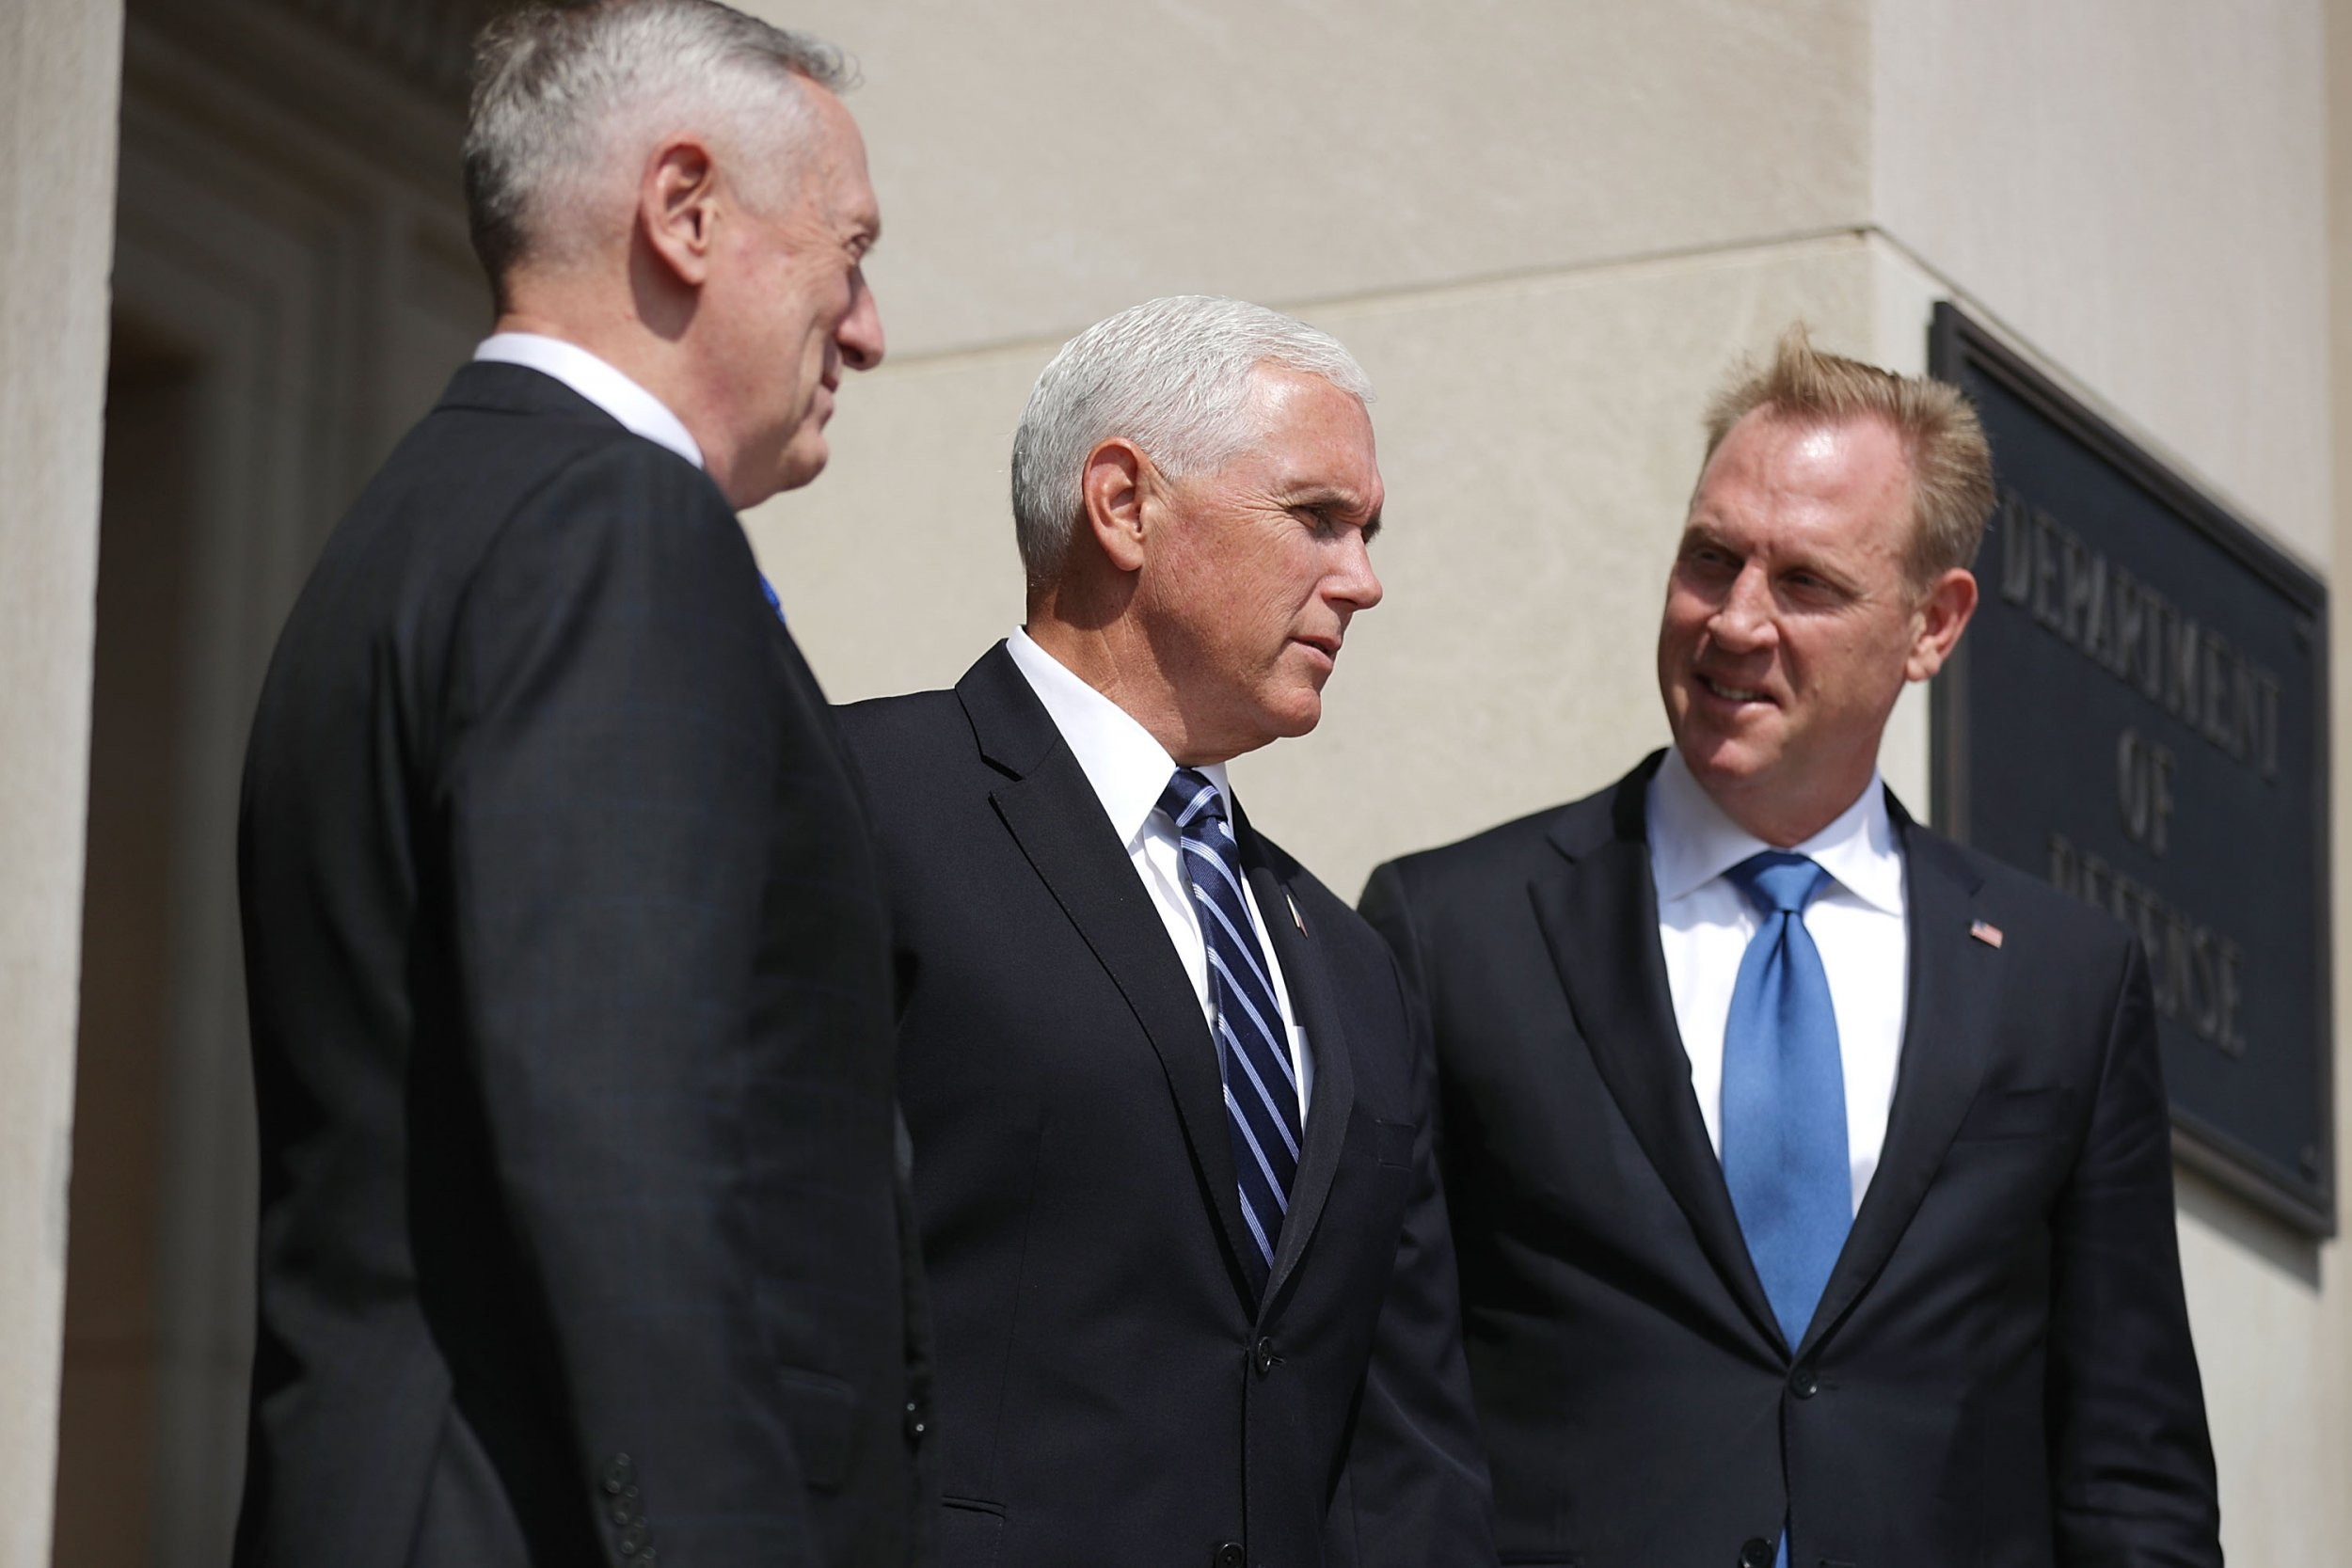 Who Is Patrick Shanahan? Trump Forces James Mattis Out Early Amid Frustration Over Resignation, Will Temporarily Replace with Shanahan